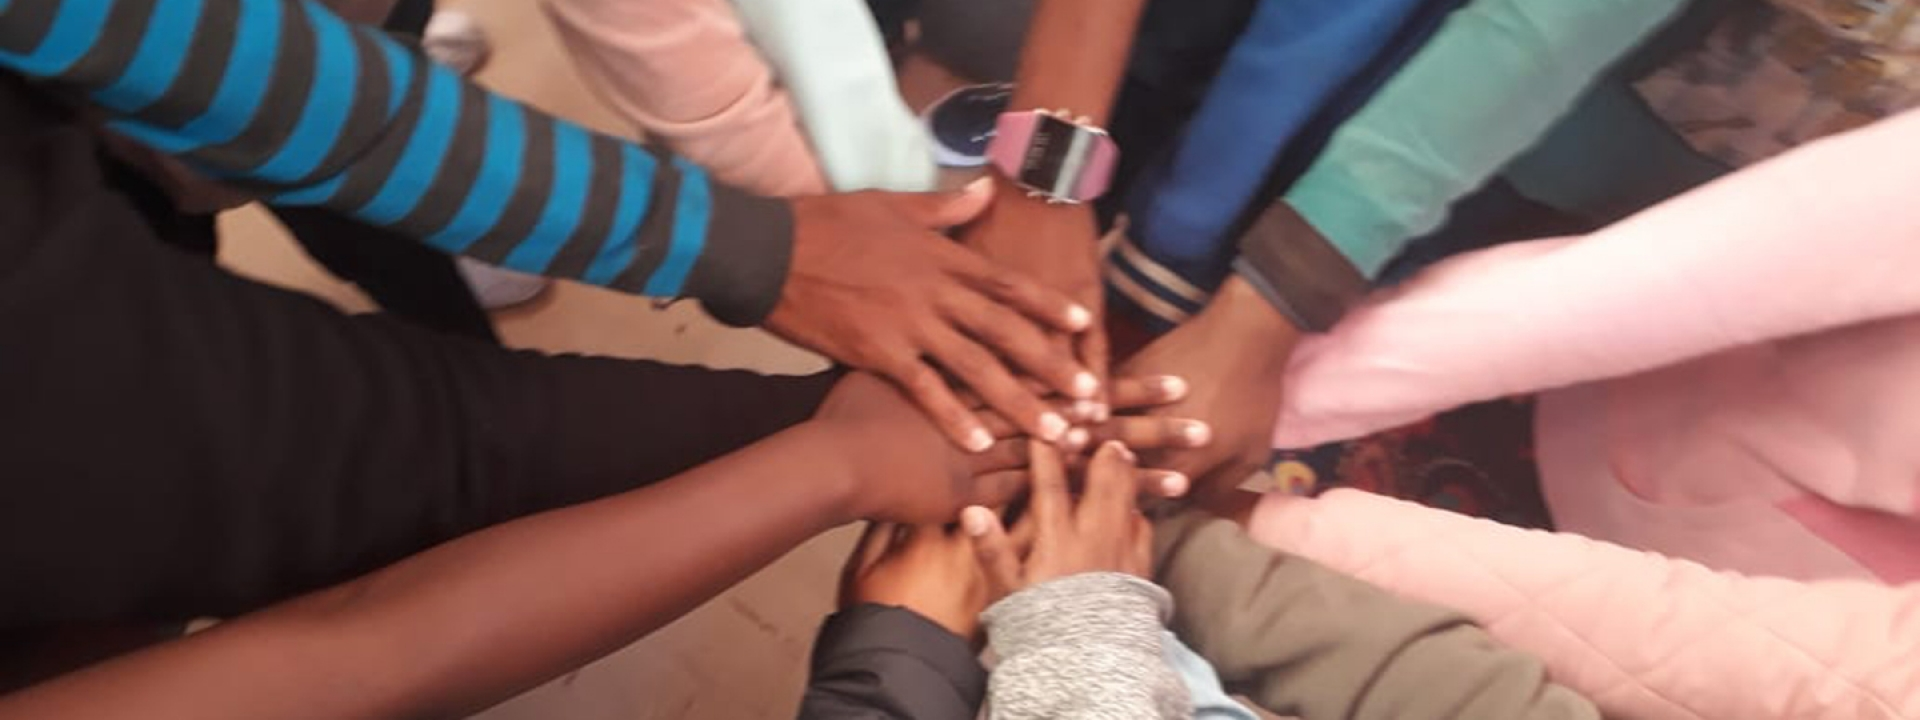 Partnerships through mutual care and respect; is what builds shared understandings of the health needs of communities.